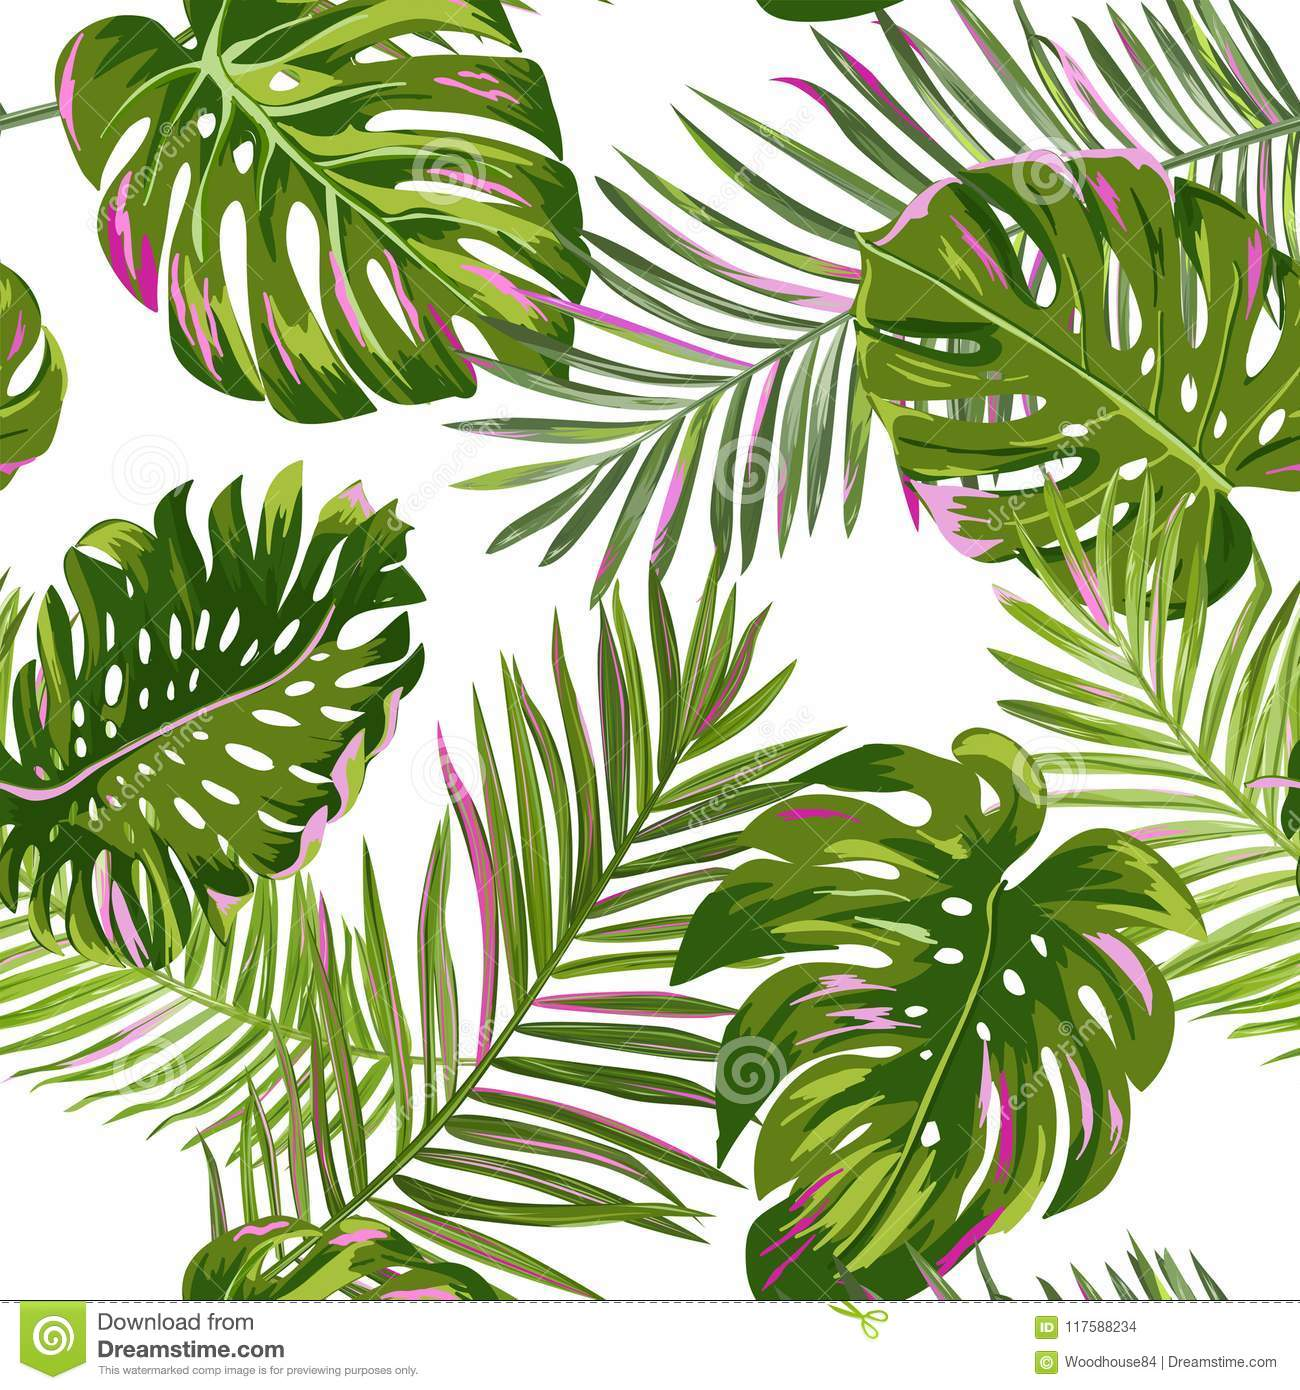 Tropical Palm Leaves Seamless Pattern. Watercolor Floral Background. Exotic Botanical Design for Fabric, Textile